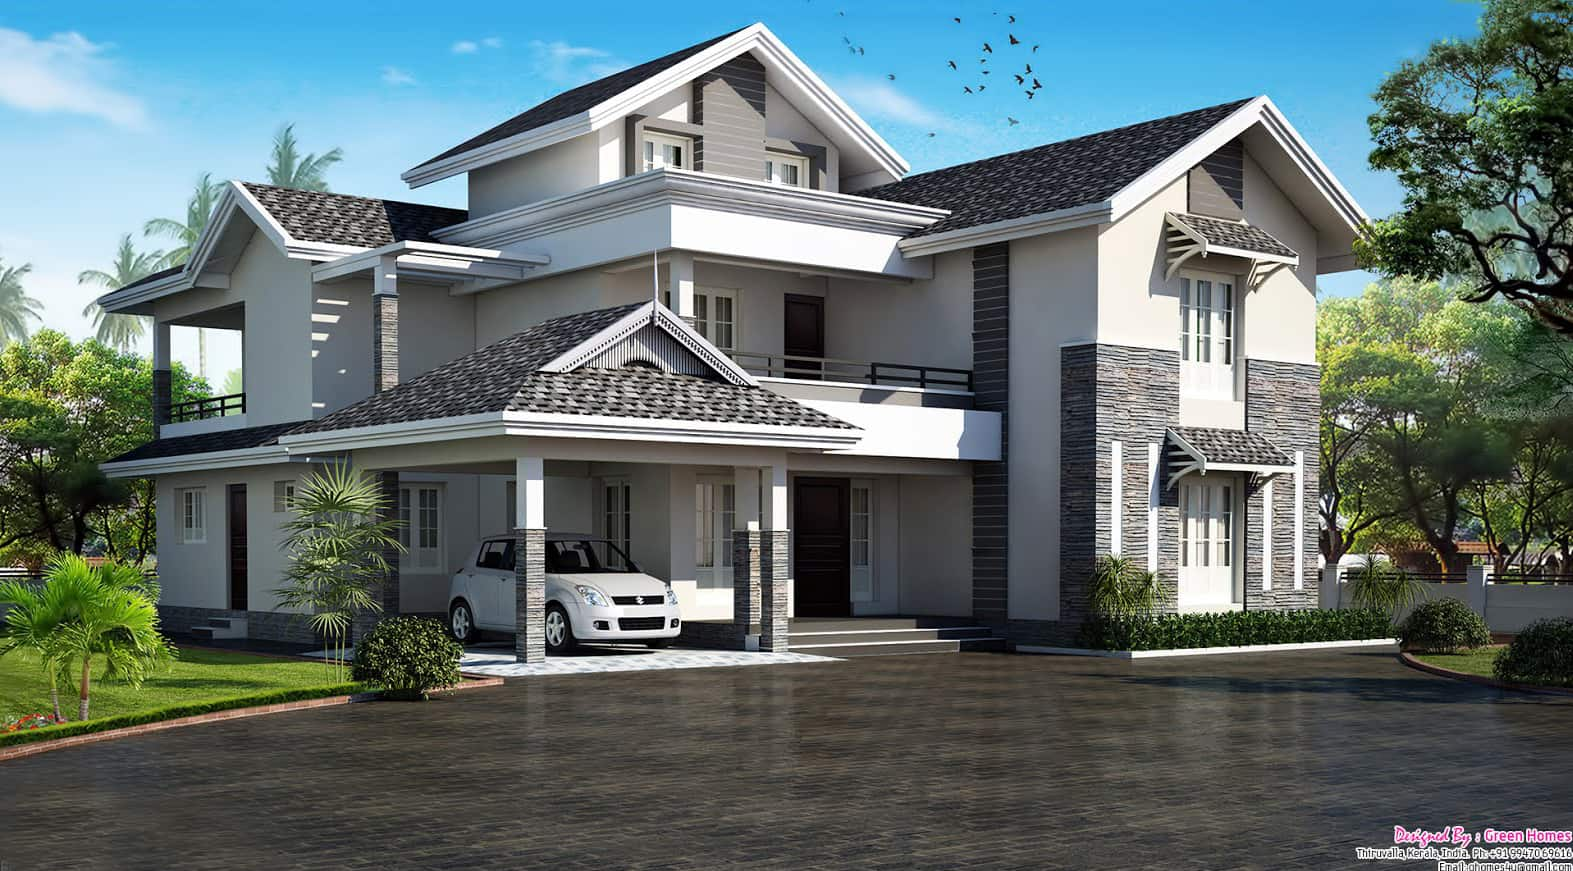 3600 5bhk modern sloping roof kerala villa design Modern home construction